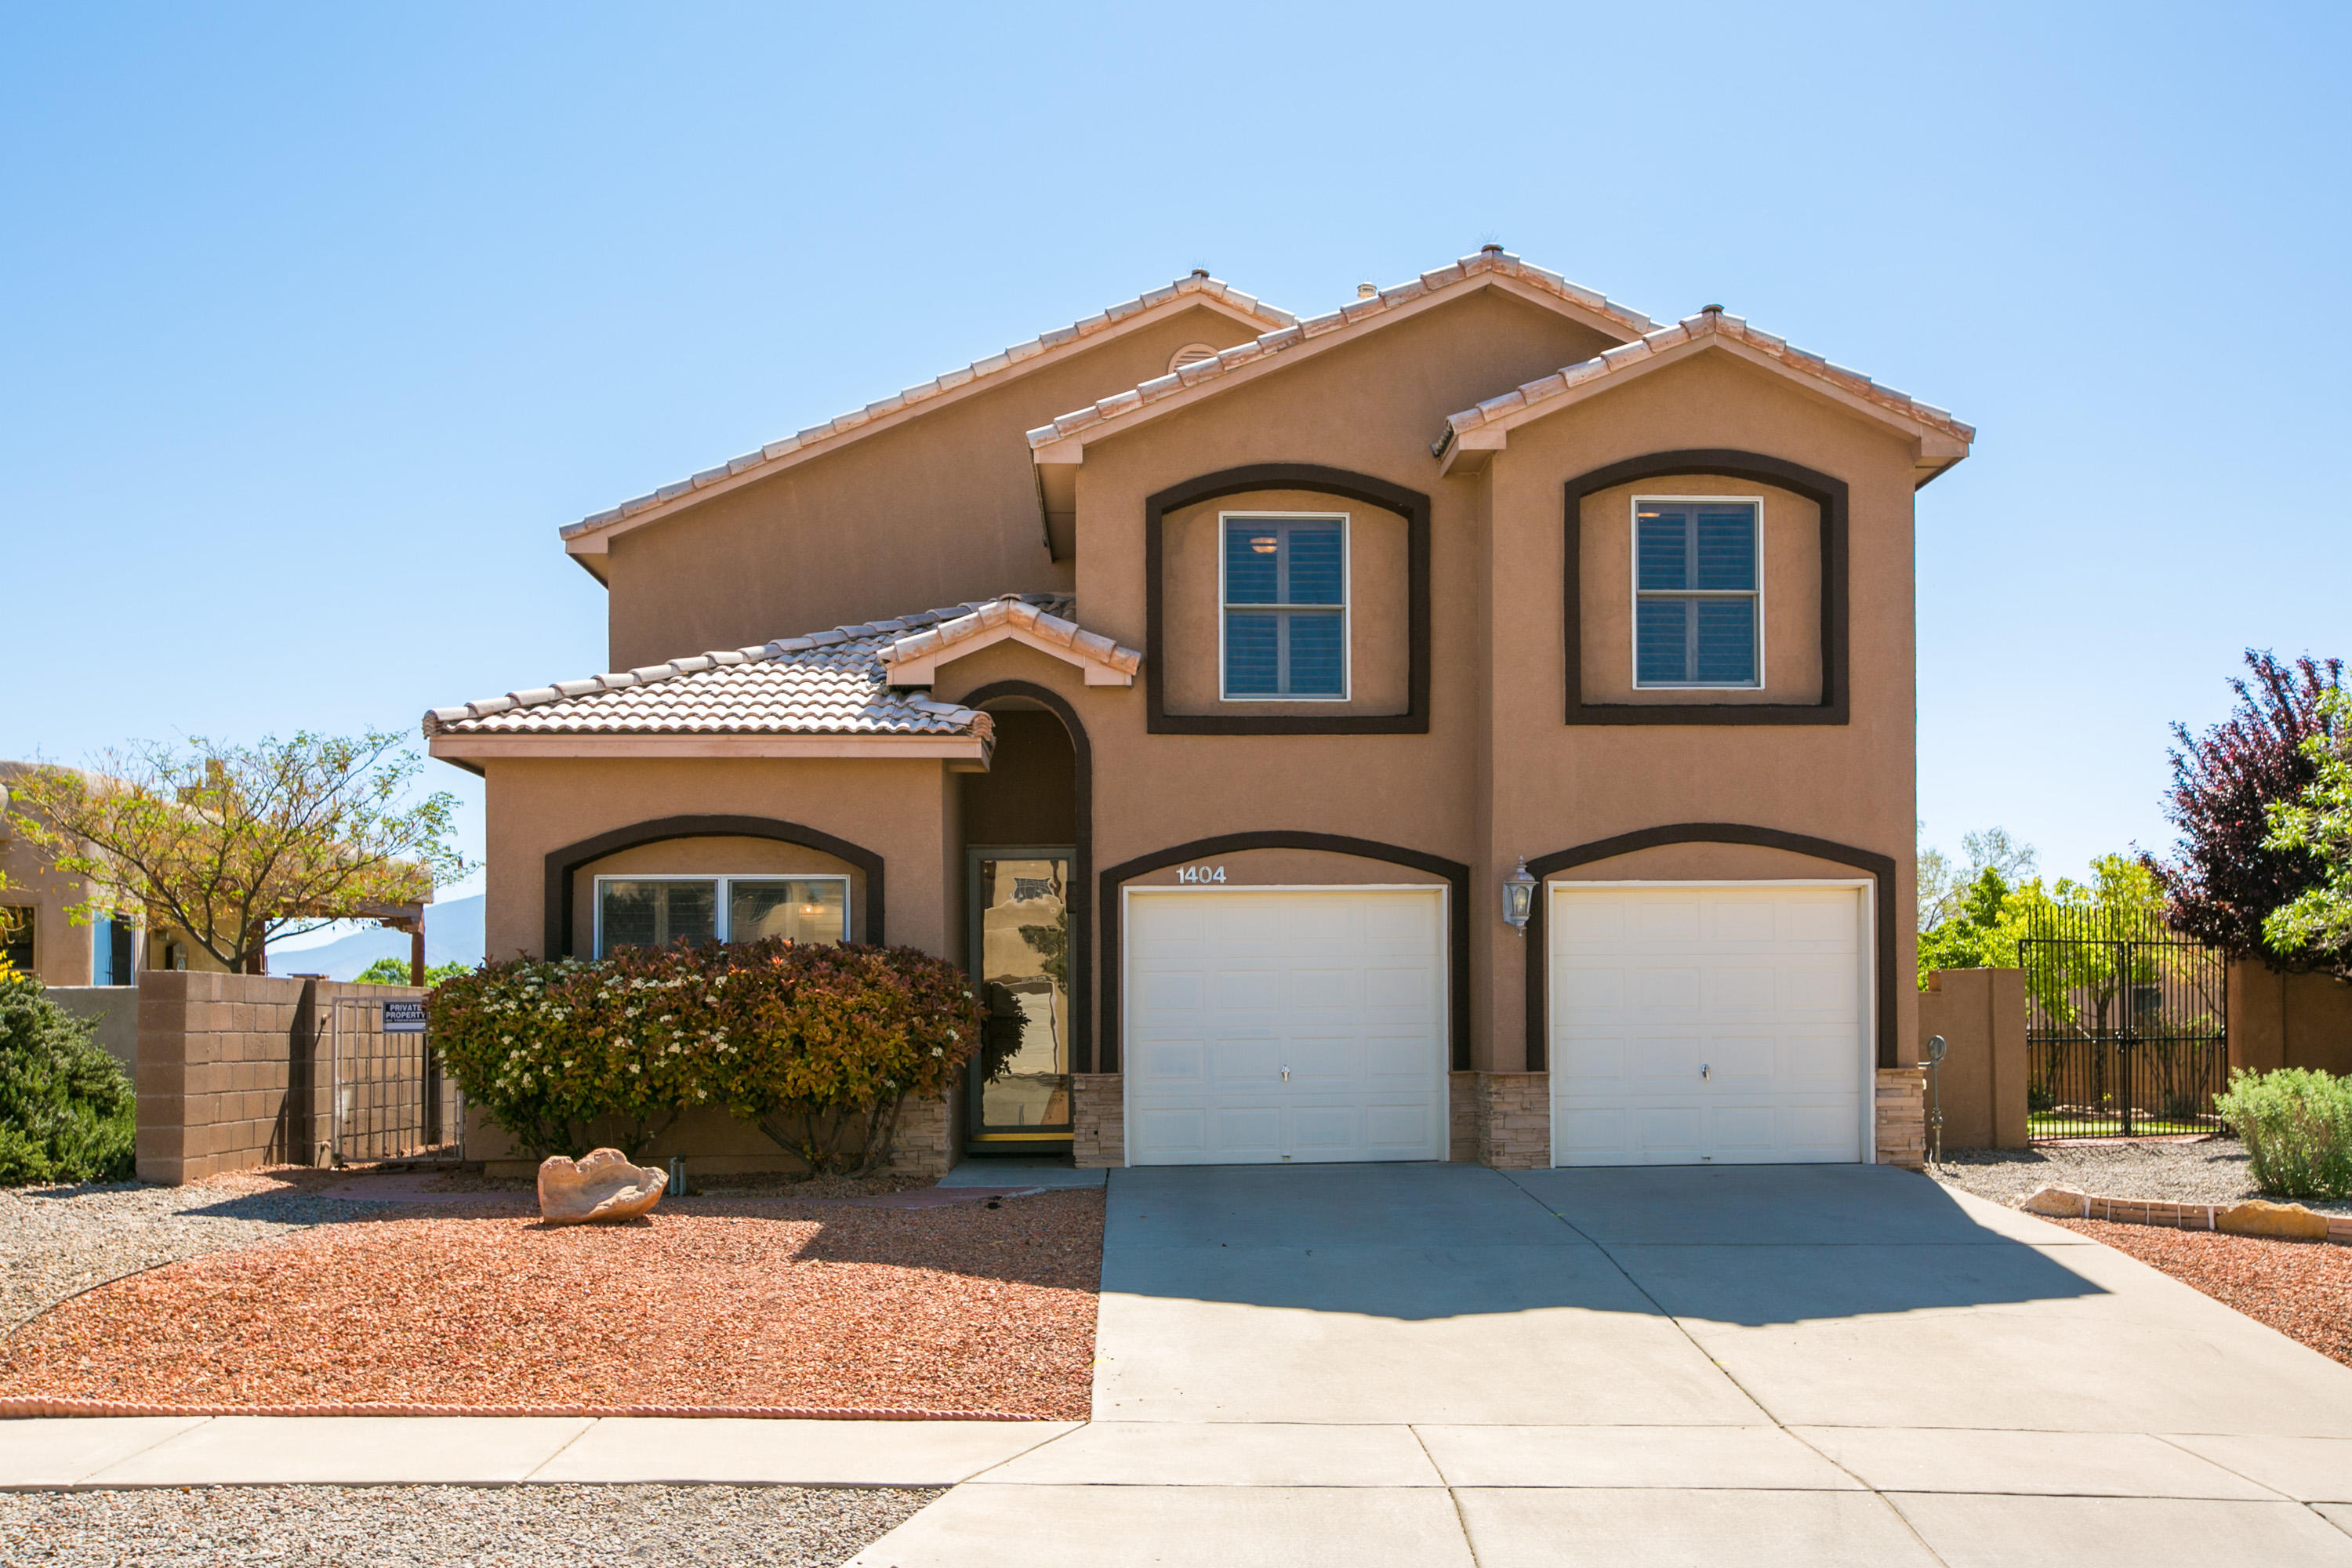 Gorgeous custom built Collatz home with amazing views of the Sandia's, located in the Trinity Estates community of Rio Rancho. Home features 2,841sf with 4 bedrooms, 3.5 bathrooms and multiple living areas! Beautiful Turkish travertine floors through this great open floor plan. Front living with a built-in media wall and wood beams. Open kitchen with custom cabinetry, granite countertops, gas range, microwave, dishwasher, refrigerator, pantry, center island and breakfast nook. Living space with a gas fireplace and wet bar! 1st floor guest suite or perfect home office. Hand crafted stair case leads up to the owners suite with 2 sided fireplace, sunroom and bath! Bath host his/hers sinks, a jetted tub & walk-in shower! Wonderful backyard with putting greens a covered patio & mountain views!